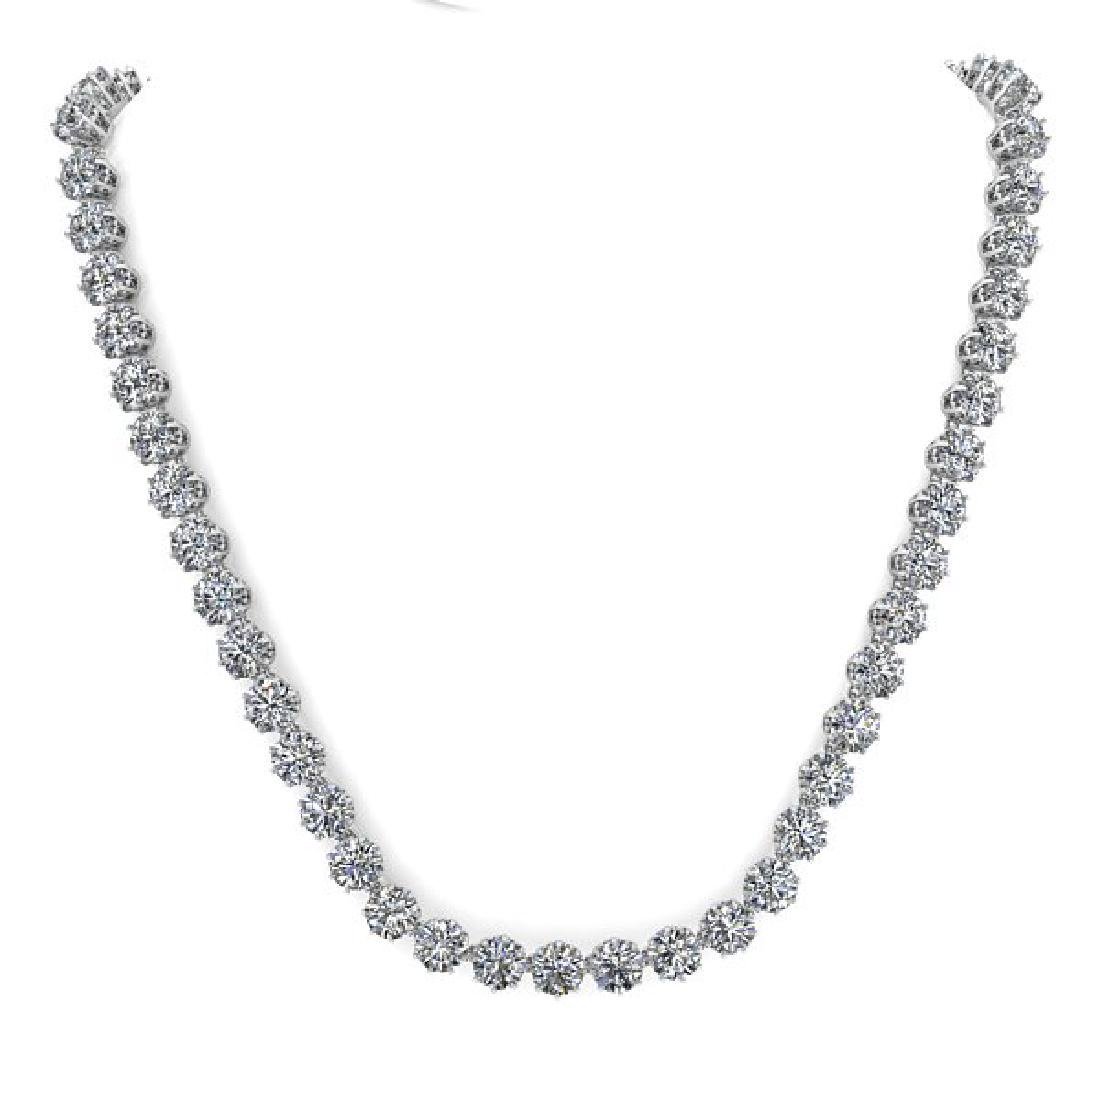 34 CTW SI Certified Diamond Necklace 14K White Gold - 3